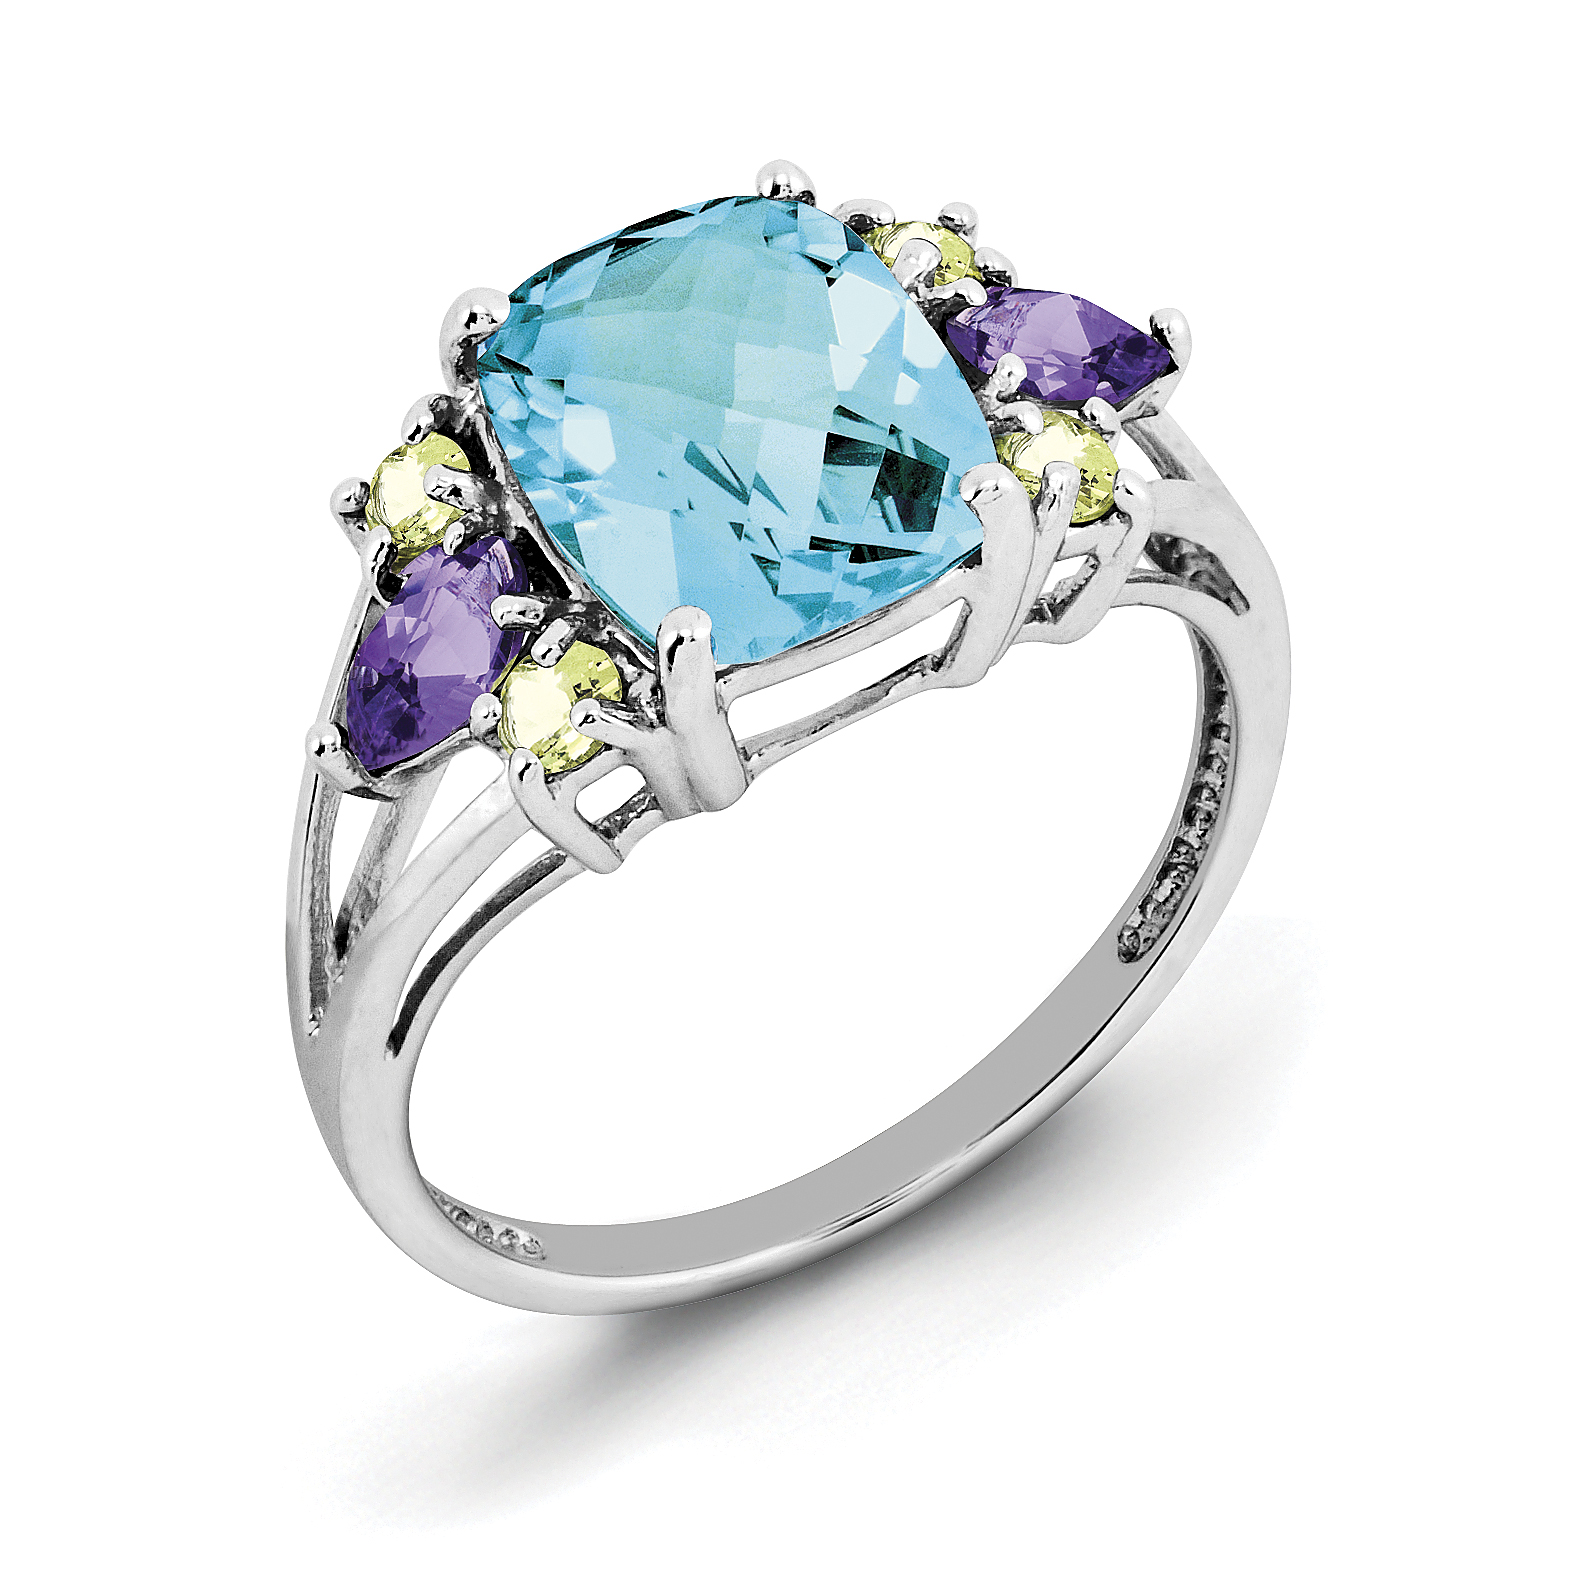 Roy Rose Jewelry Sterling Silver Light Swiss Blue Topaz, Amethyst and Peridot Ring ~ Size 7 by